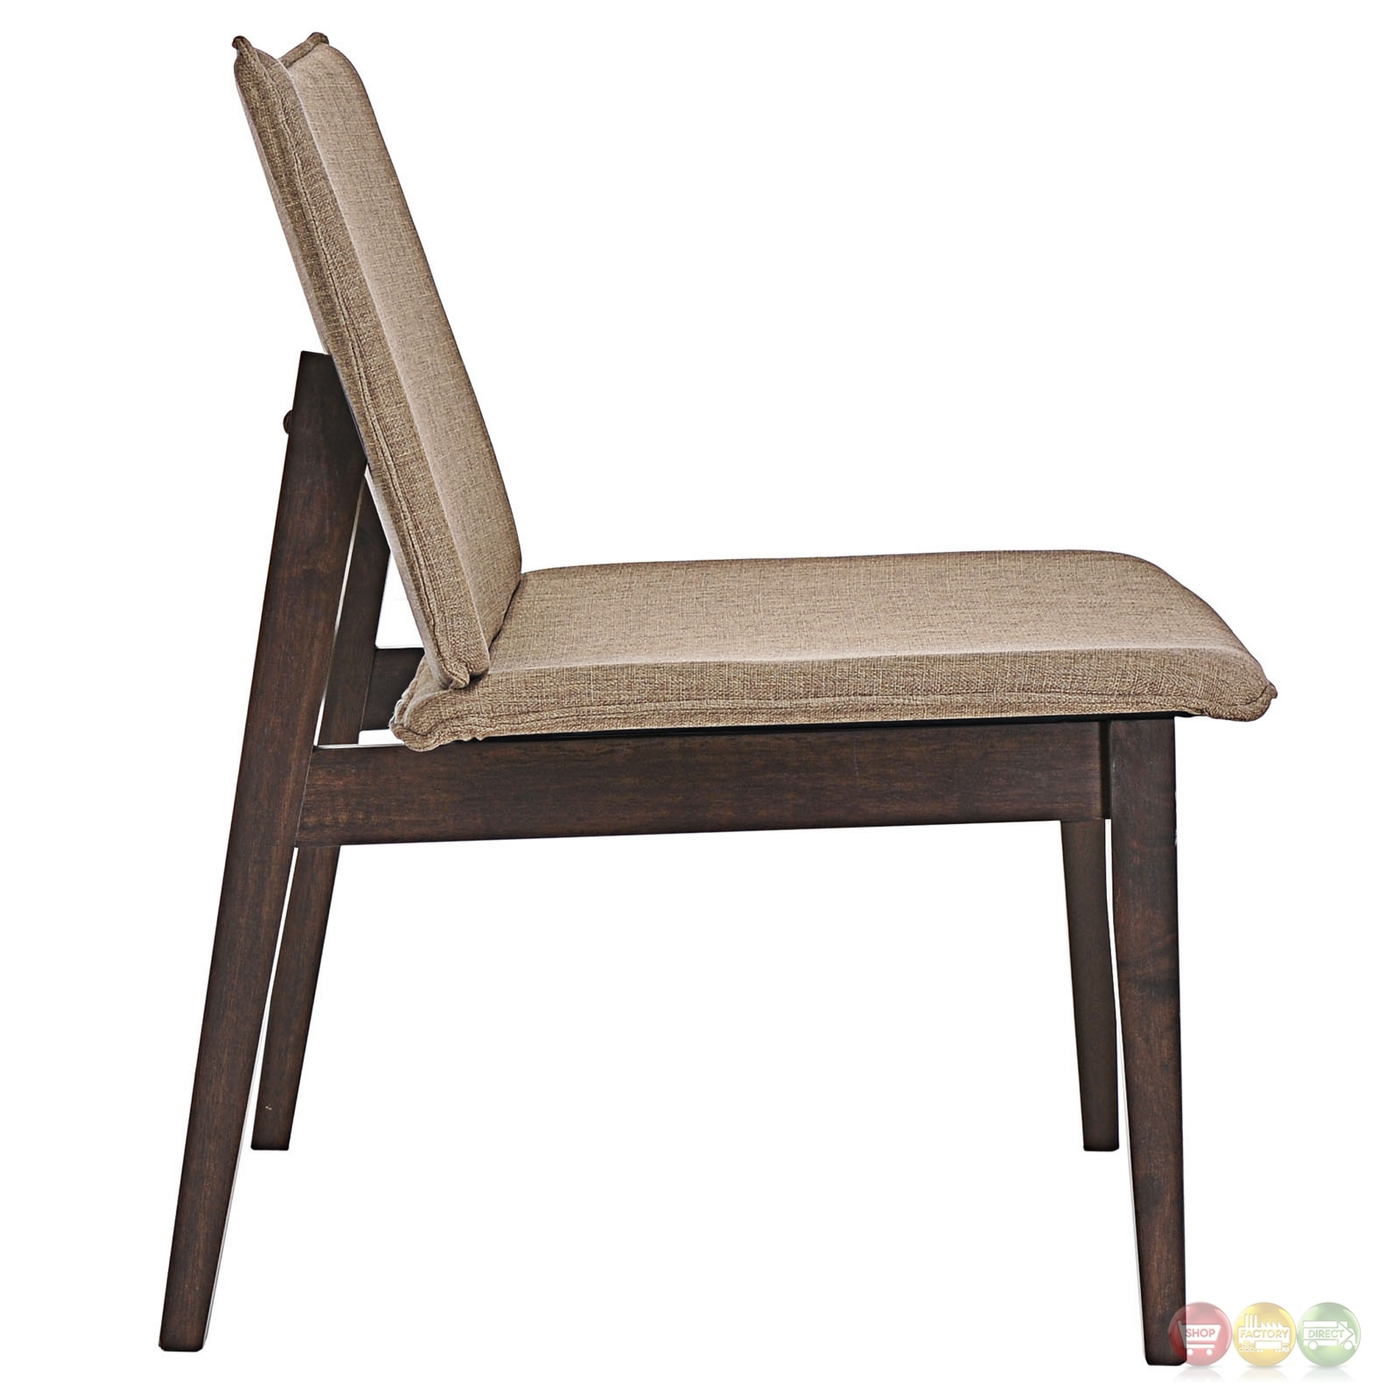 Evade vintage modern upholstered lounge chair with wood